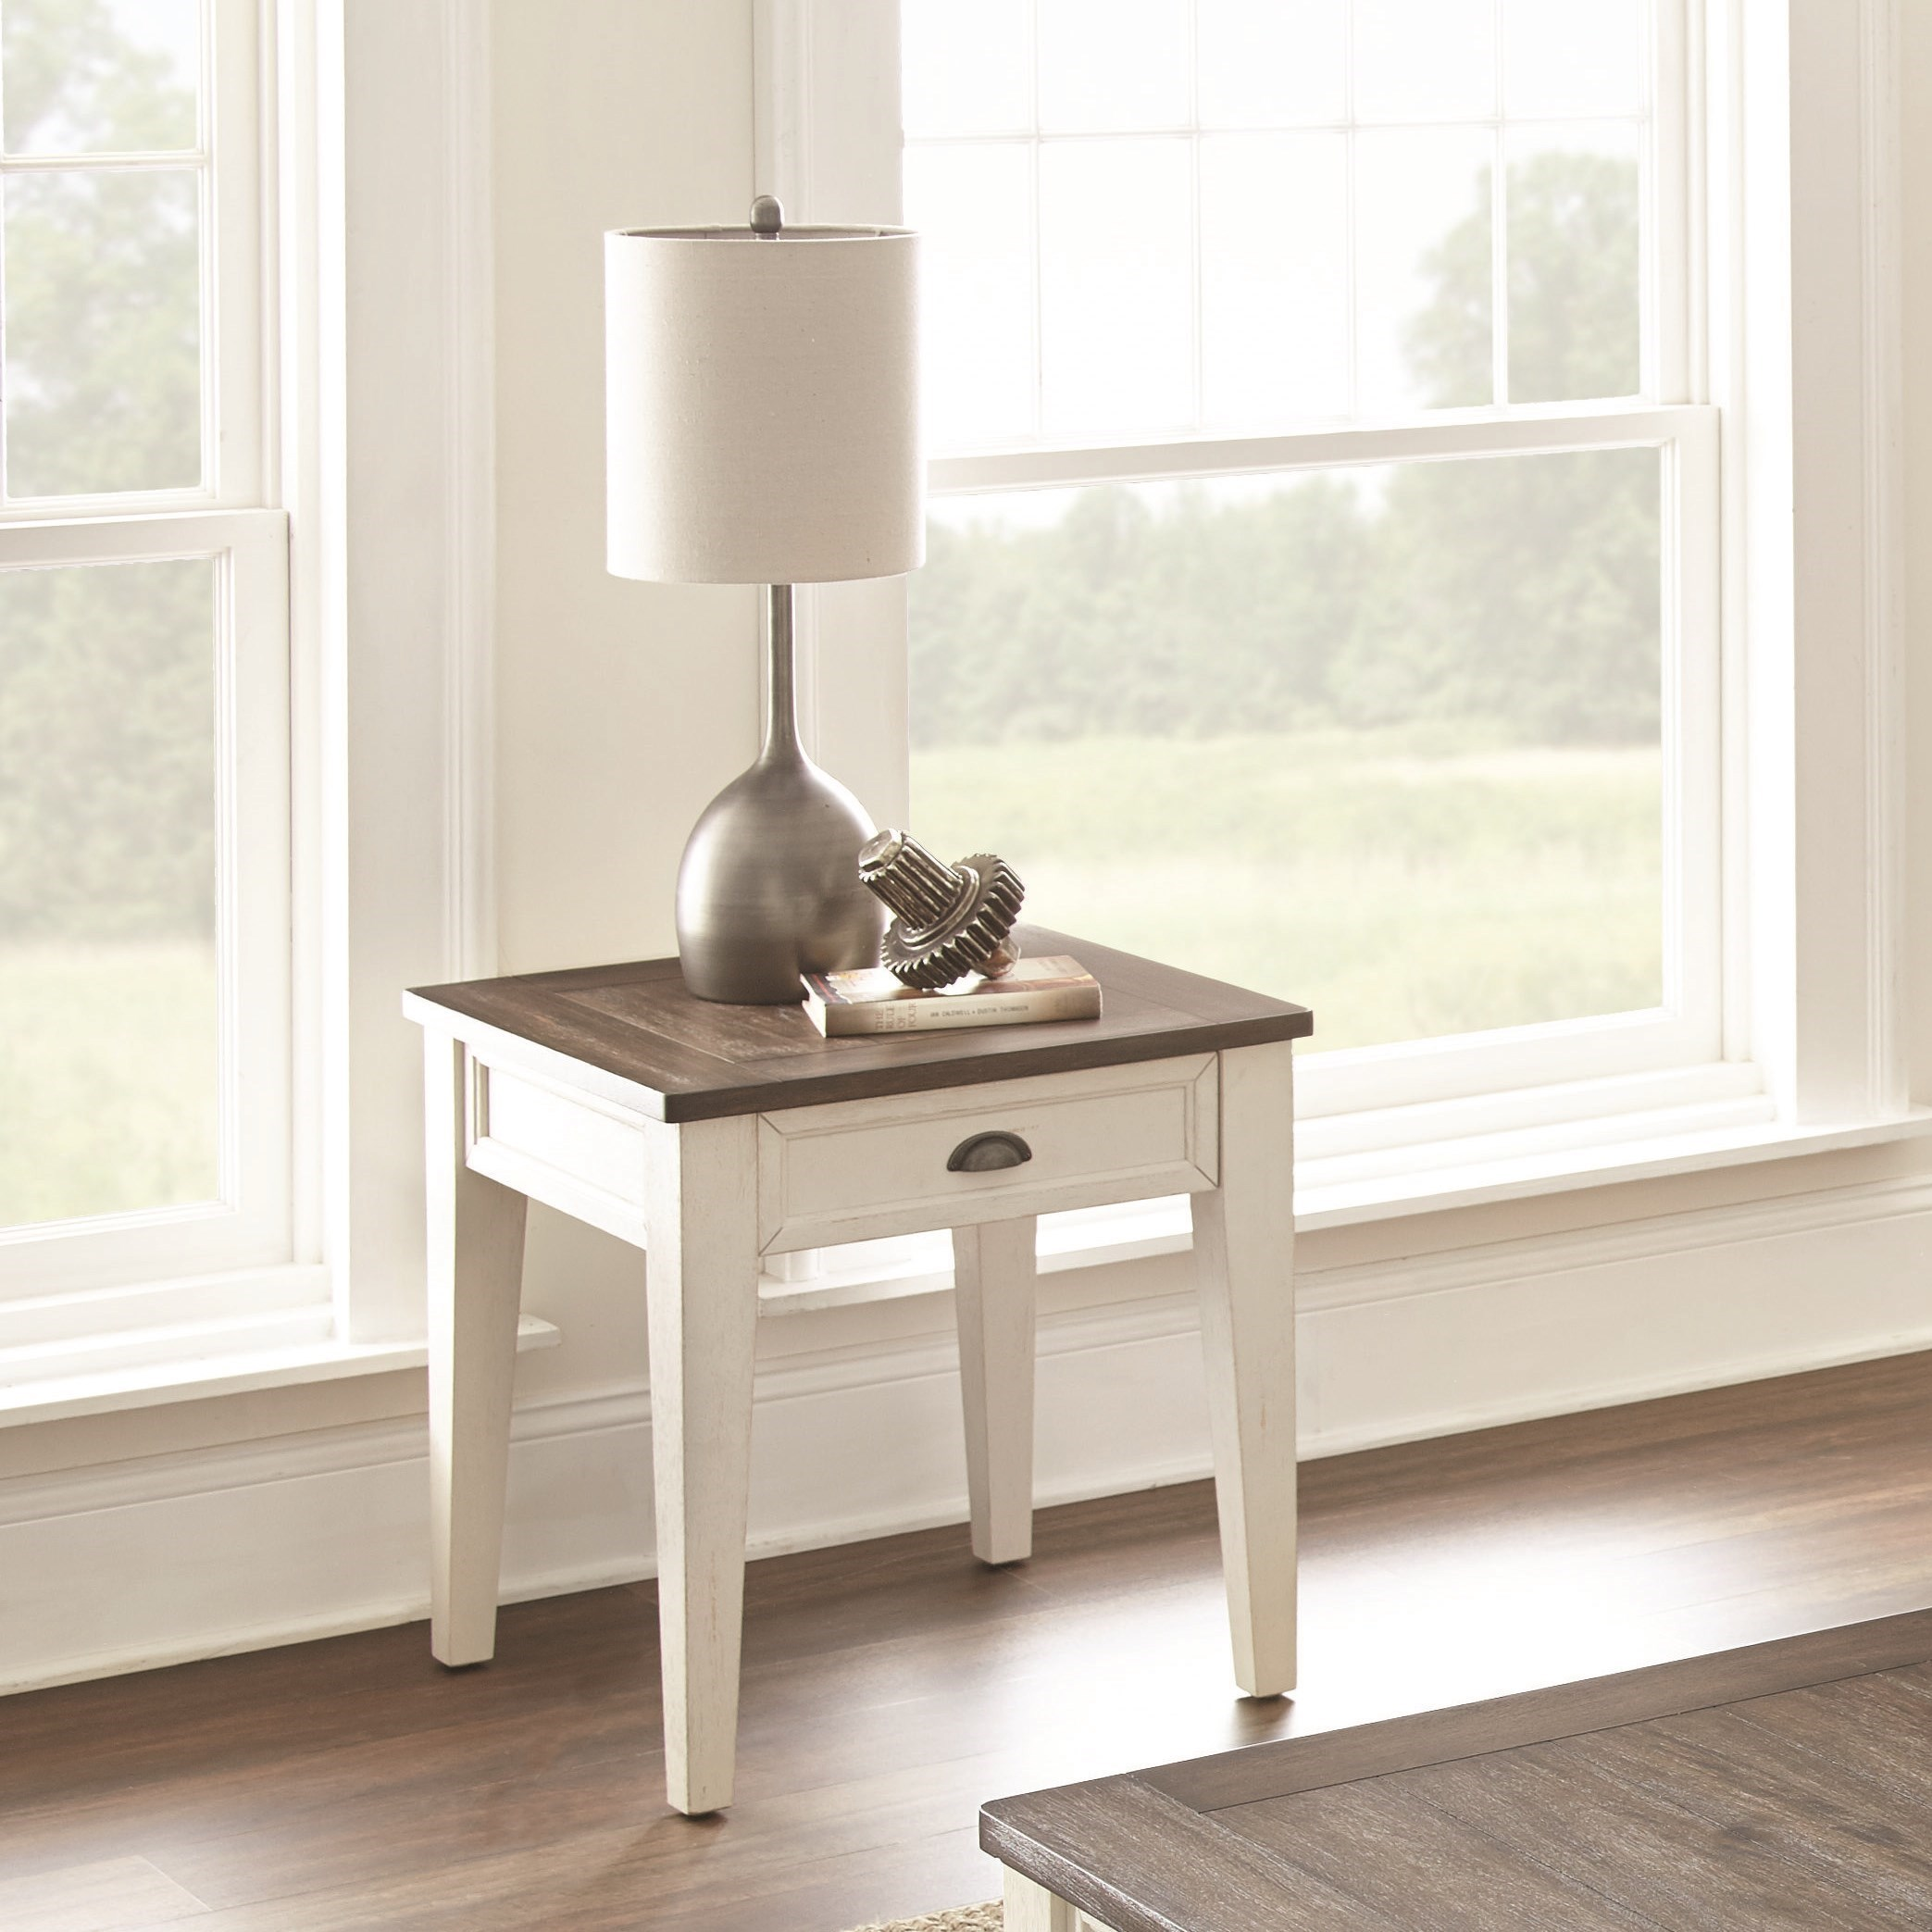 Cayla End Table by Steve Silver at Furniture Fair - North Carolina